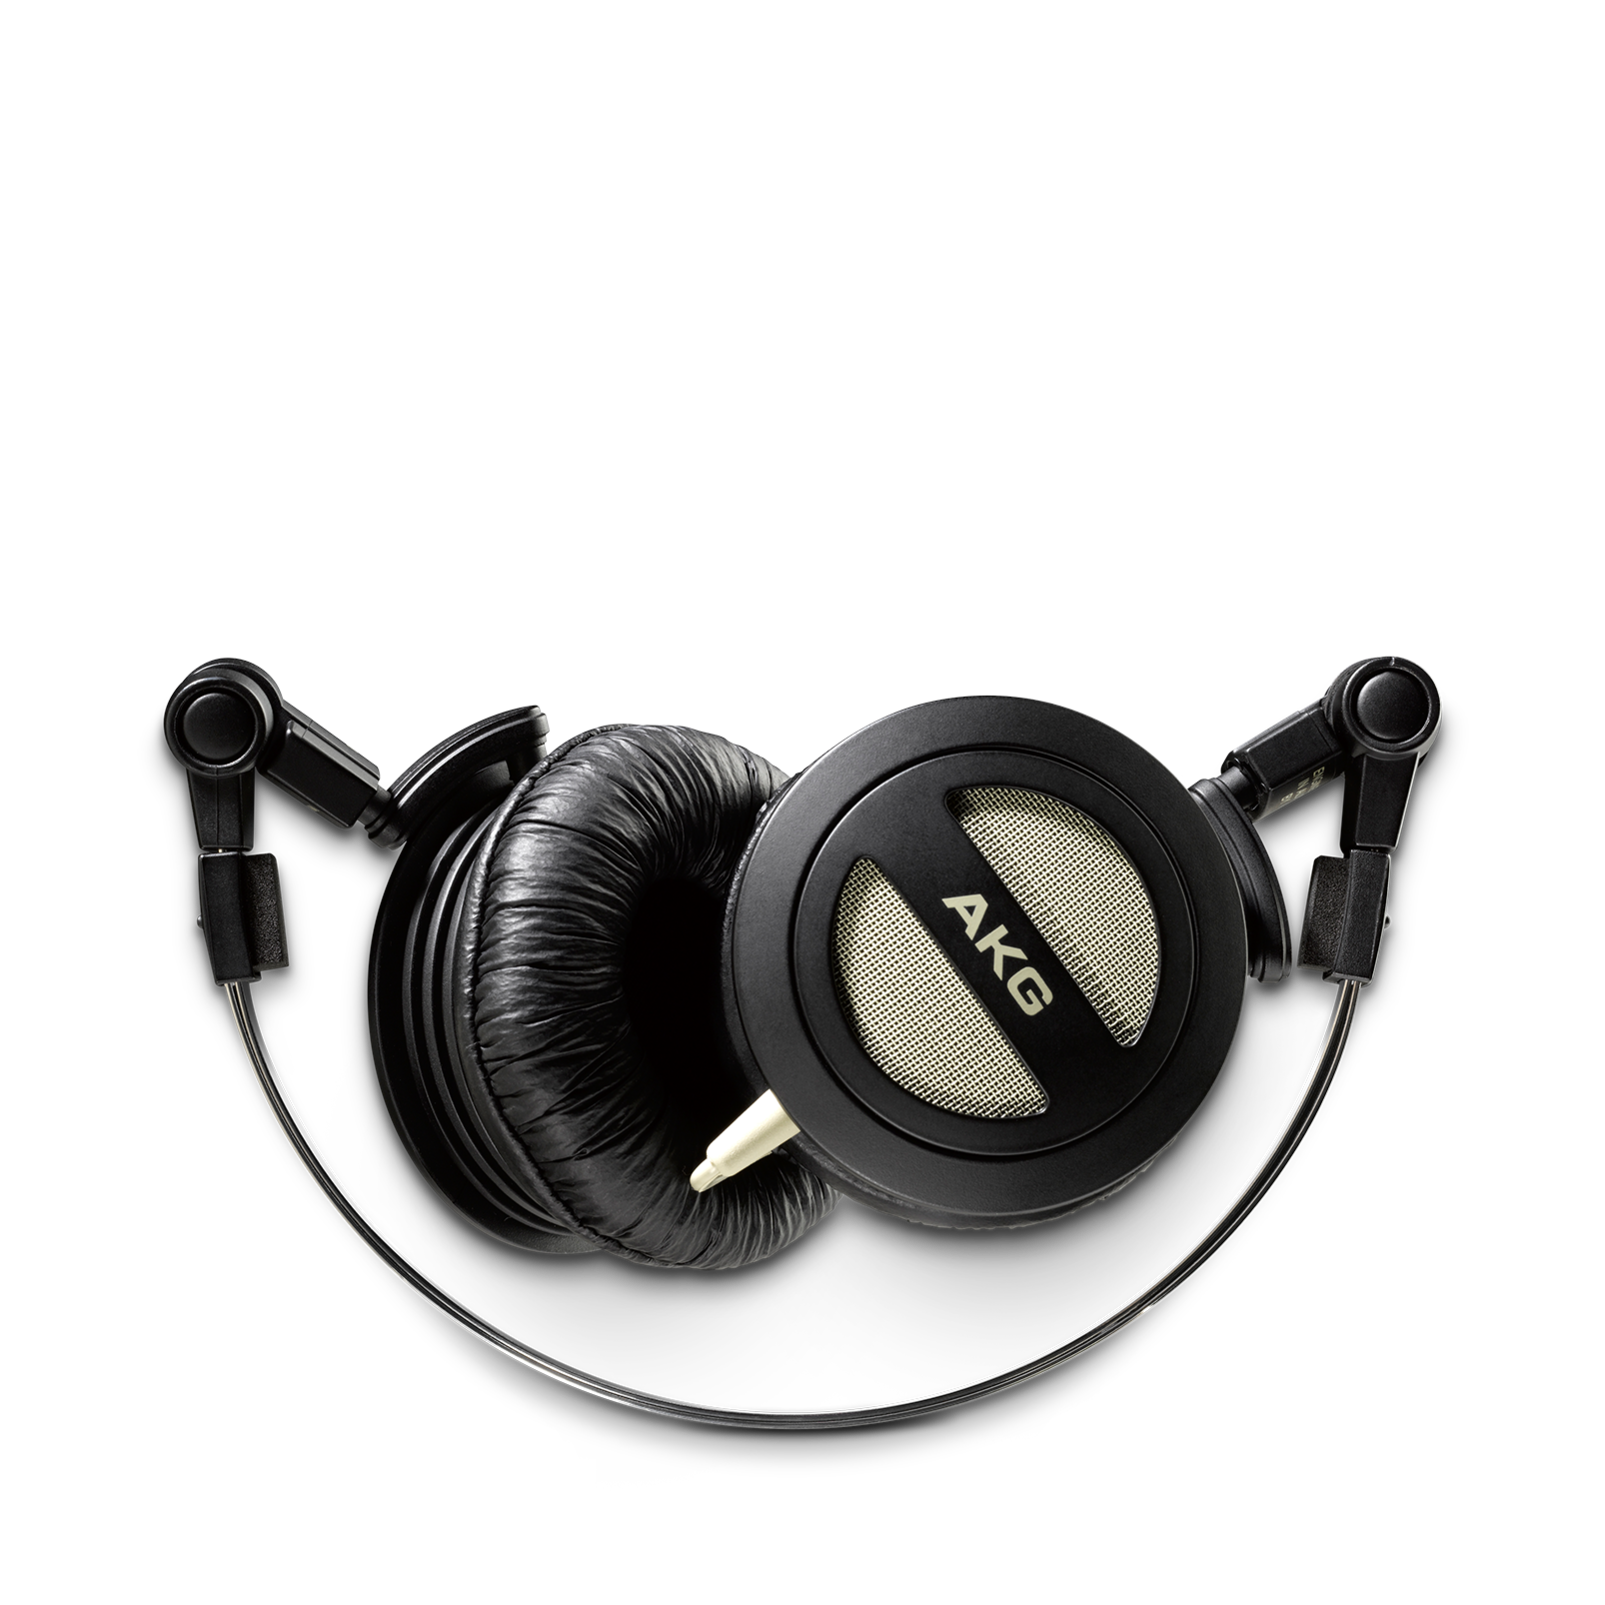 K404 - Black - Folding mini stereo headphones with superior sound quality and portability - Detailshot 1